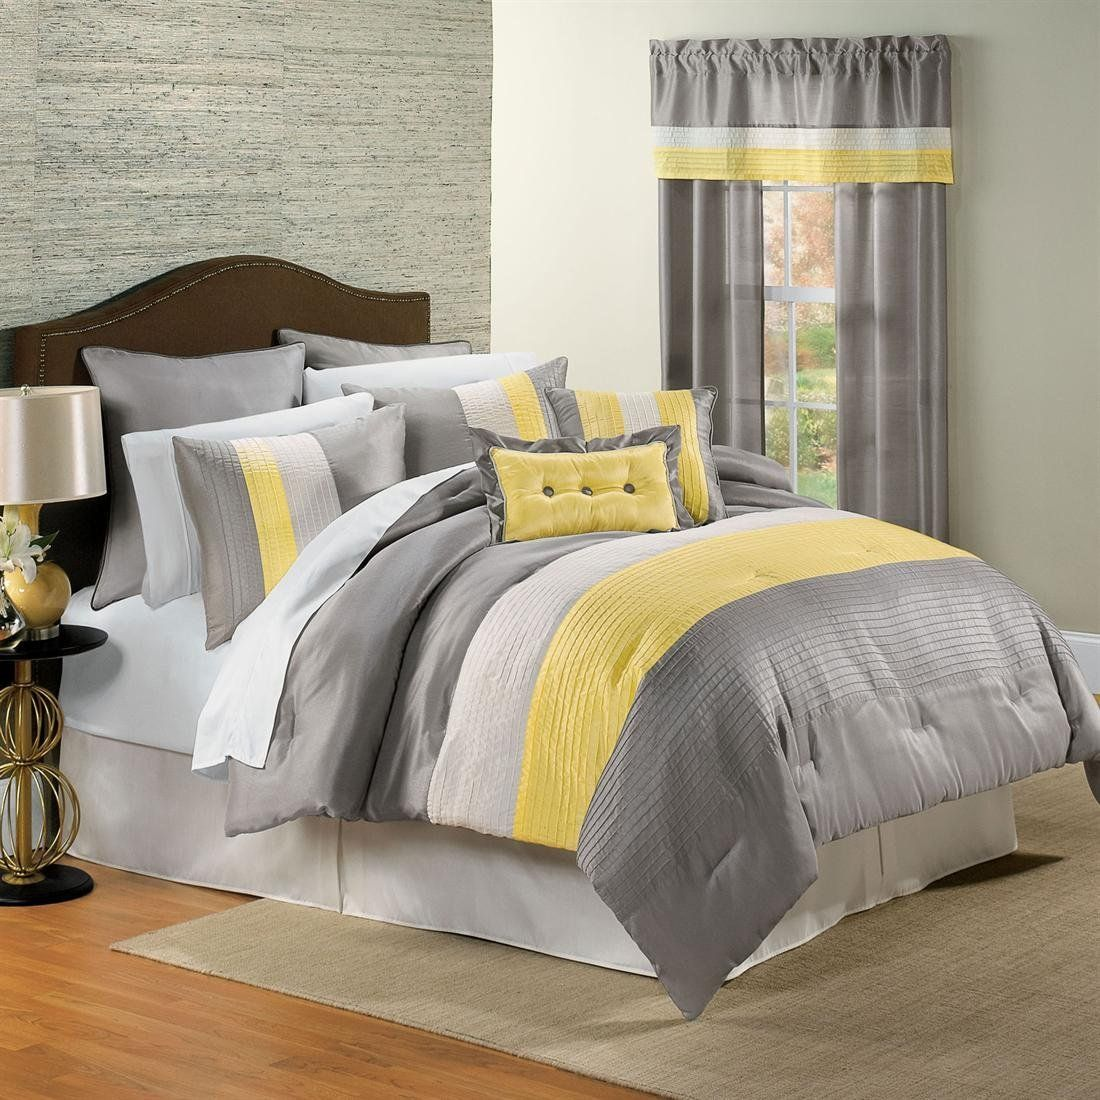 yellow, white, grey and black bedding. i love this color scheme